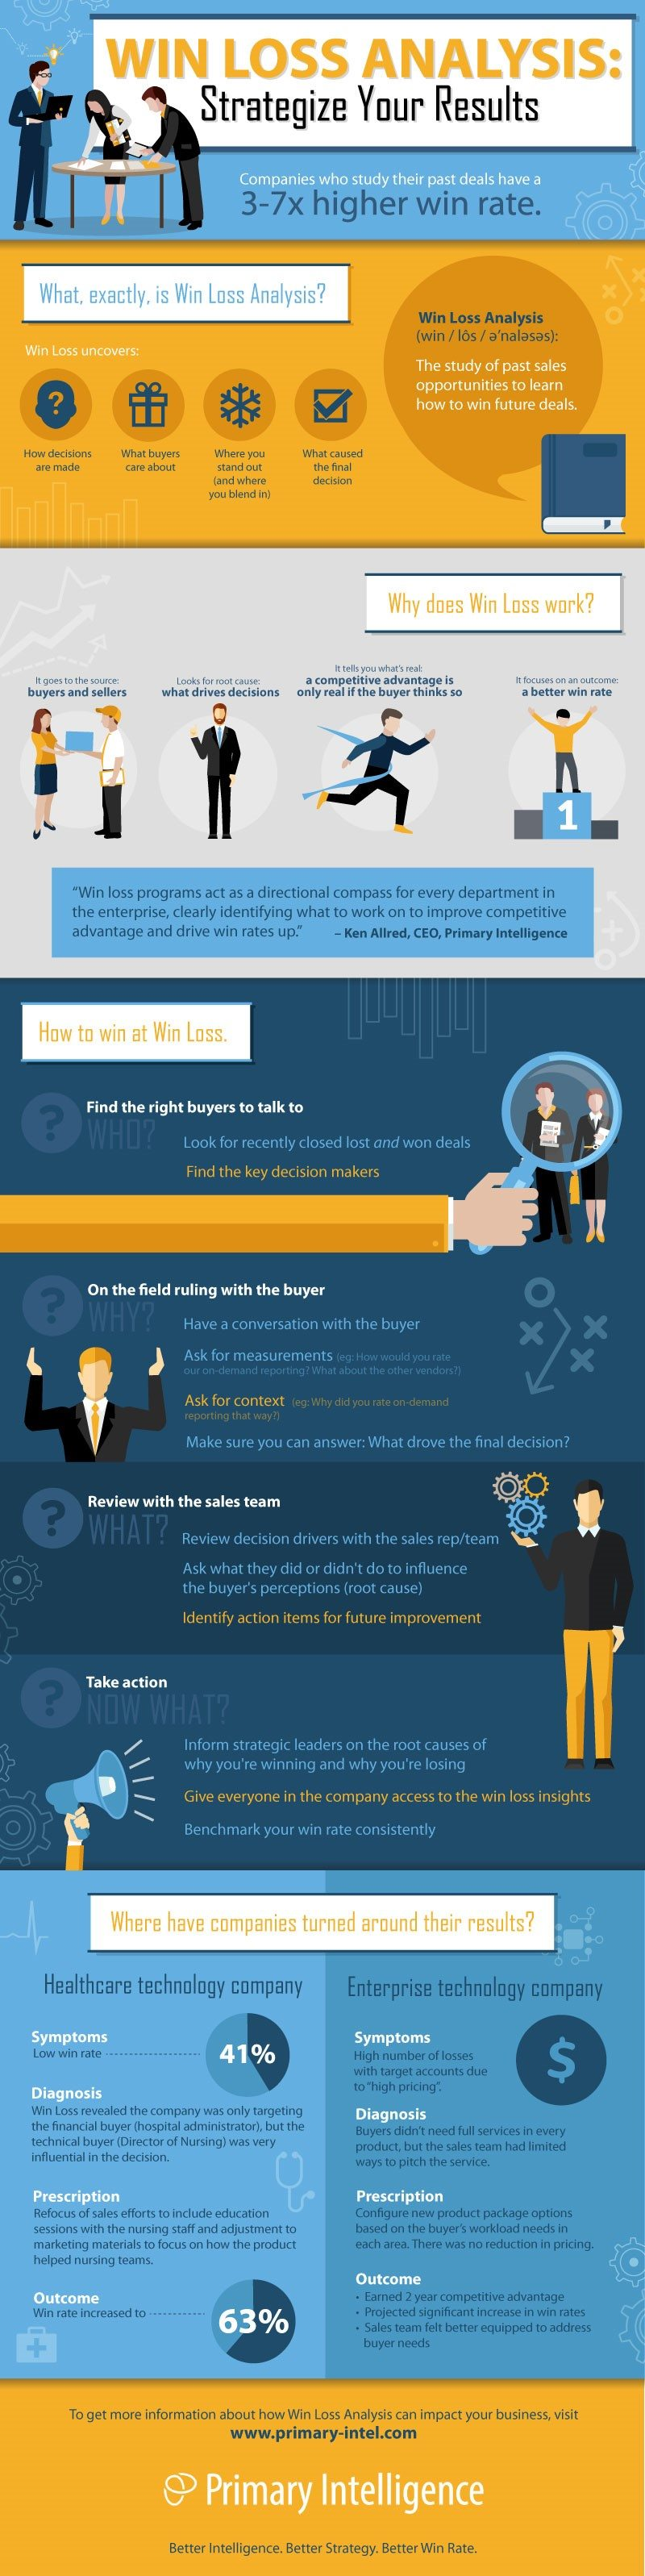 Win-Loss-Analysis-Strategize-Your-Results infographic